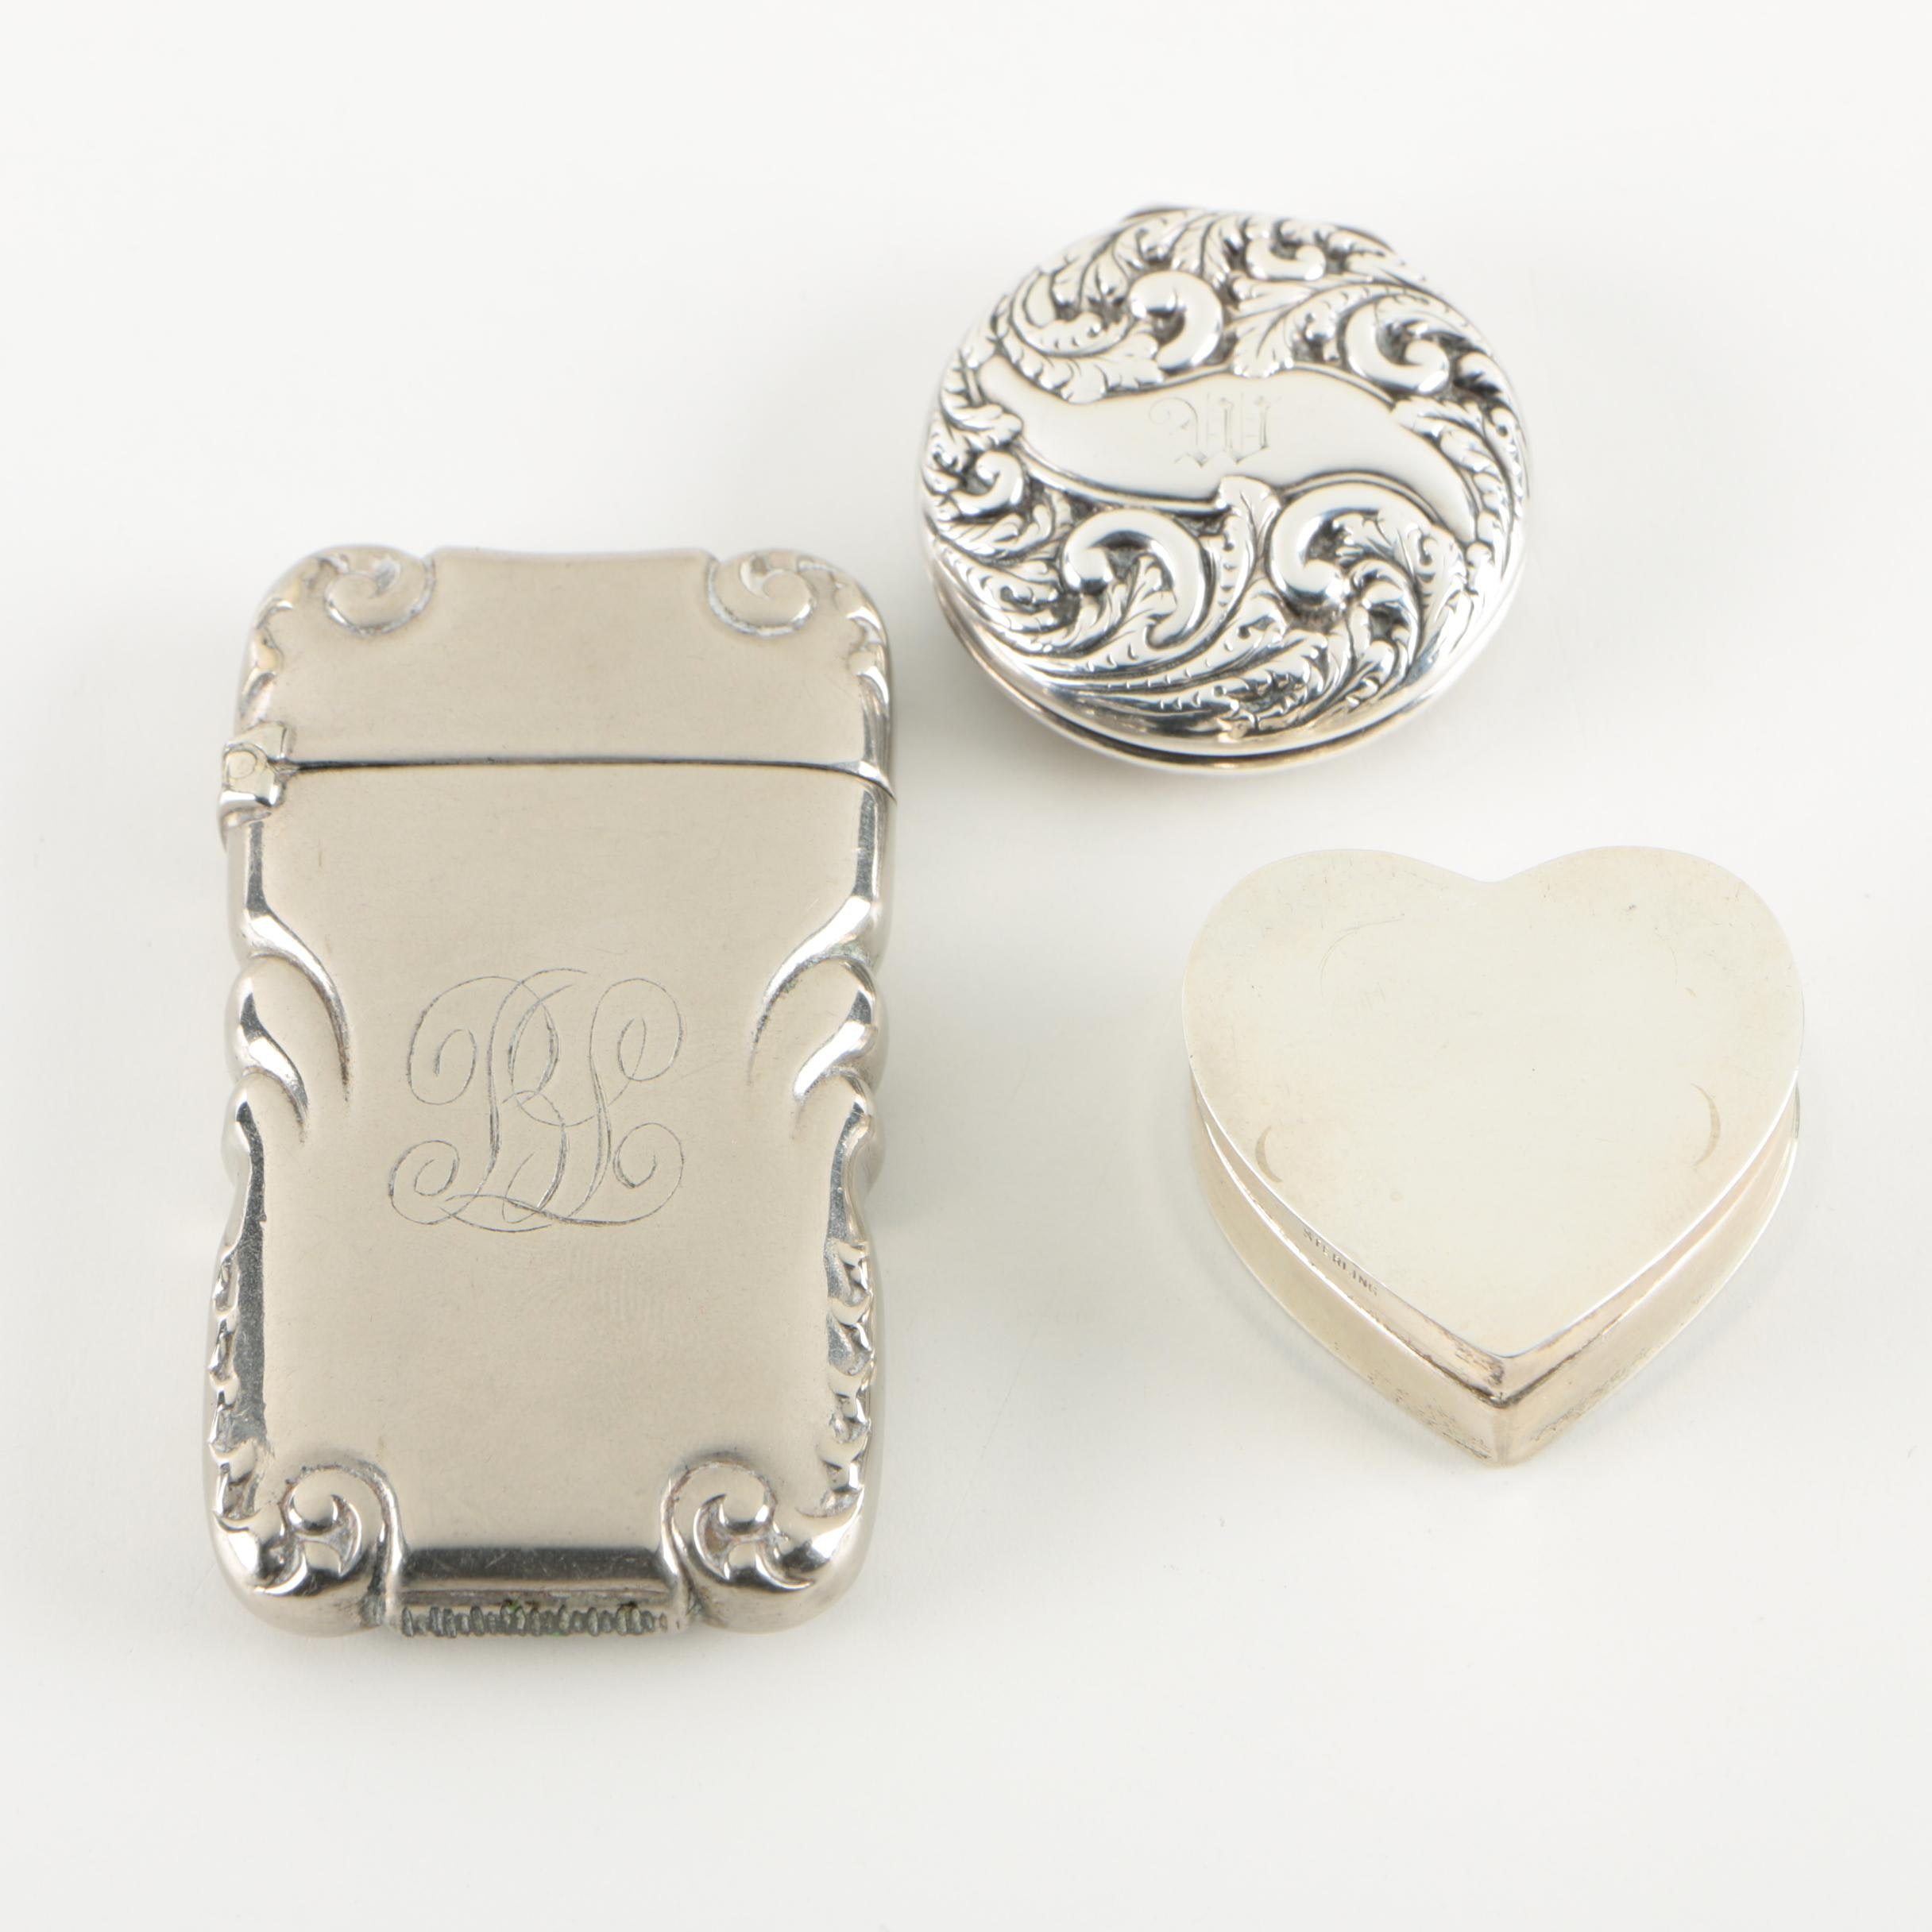 Sterling Silver Pill Box and Thread Case with German Silver Match Safe